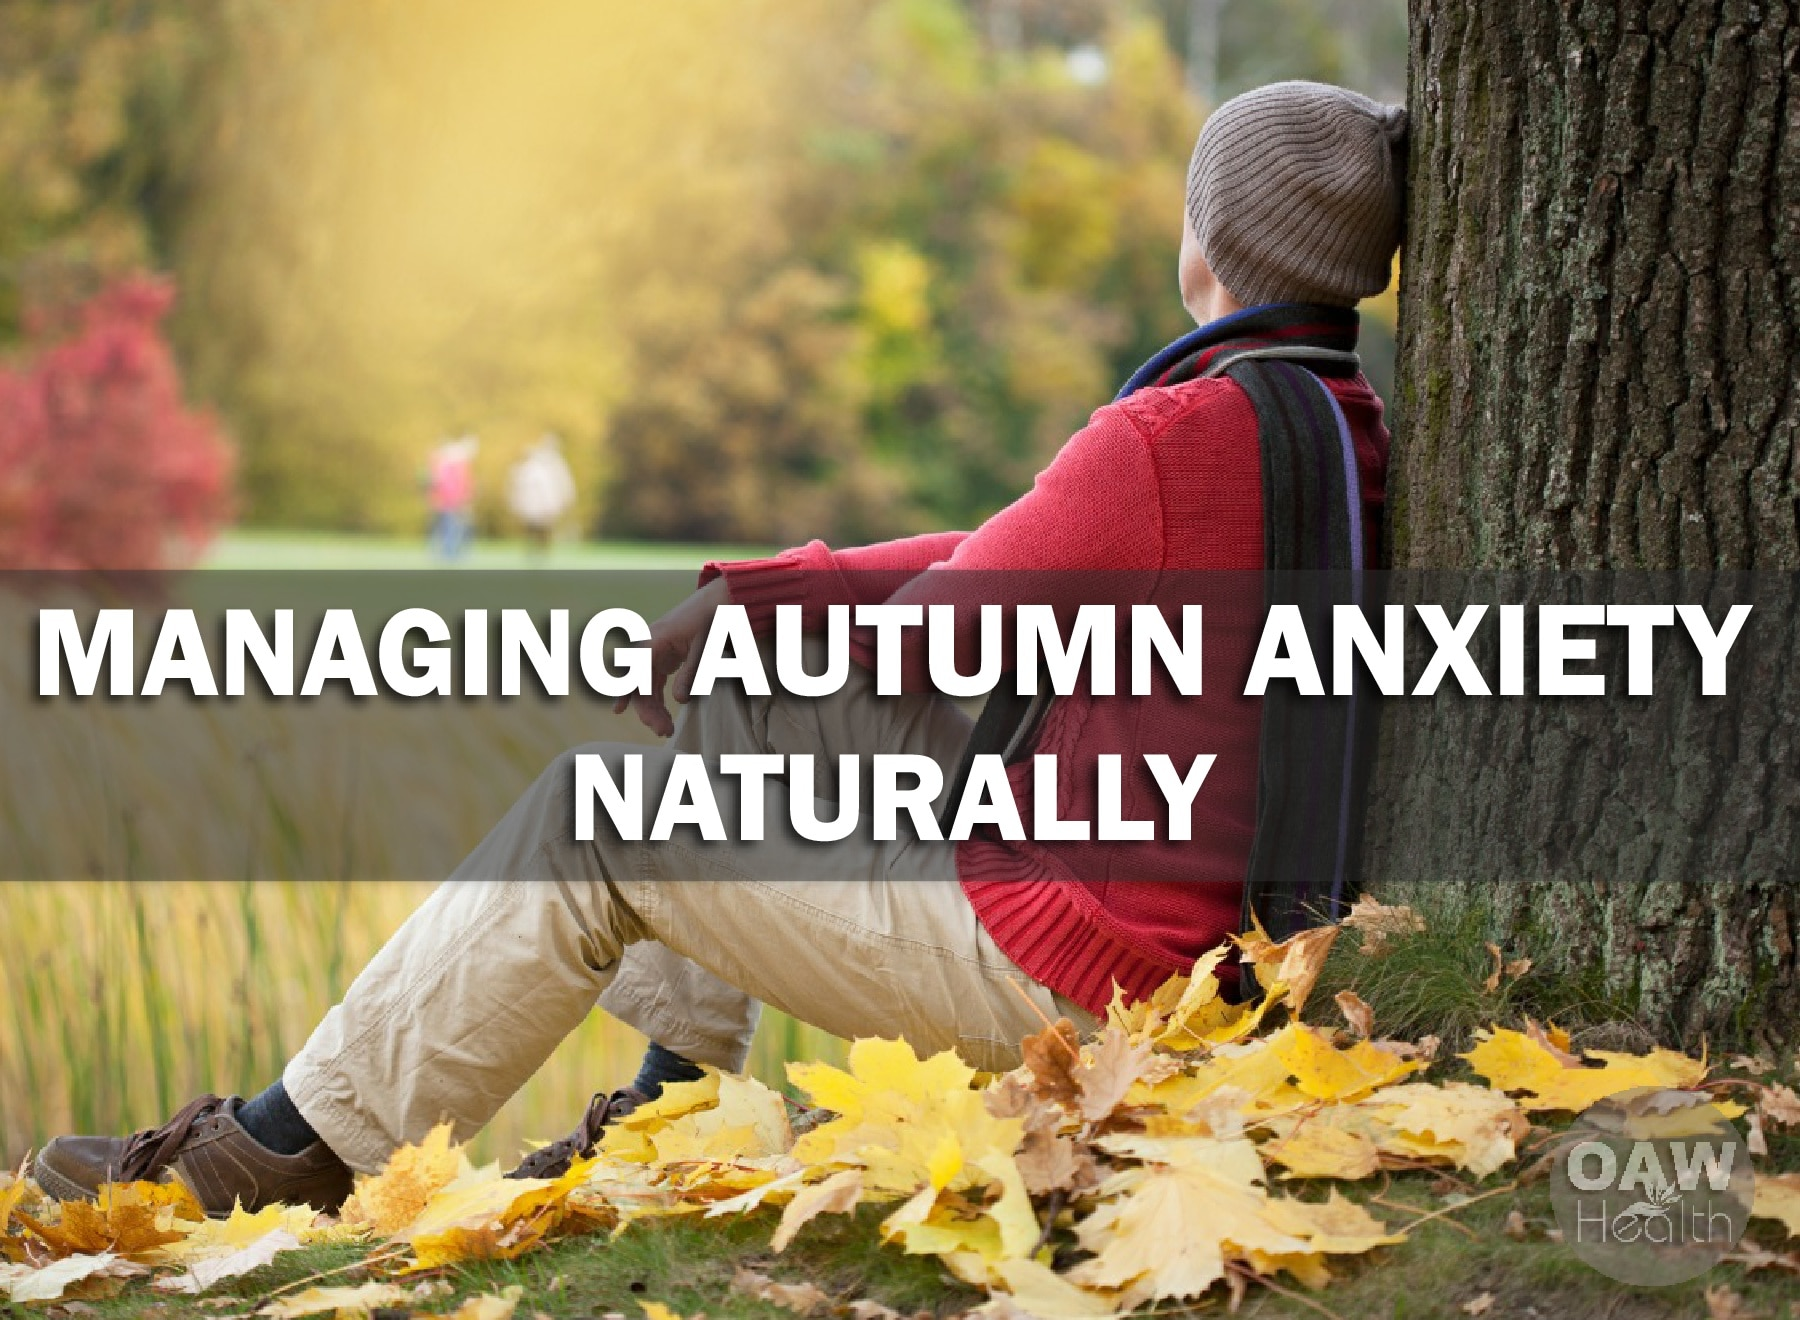 Managing Autumn Anxiety Naturally